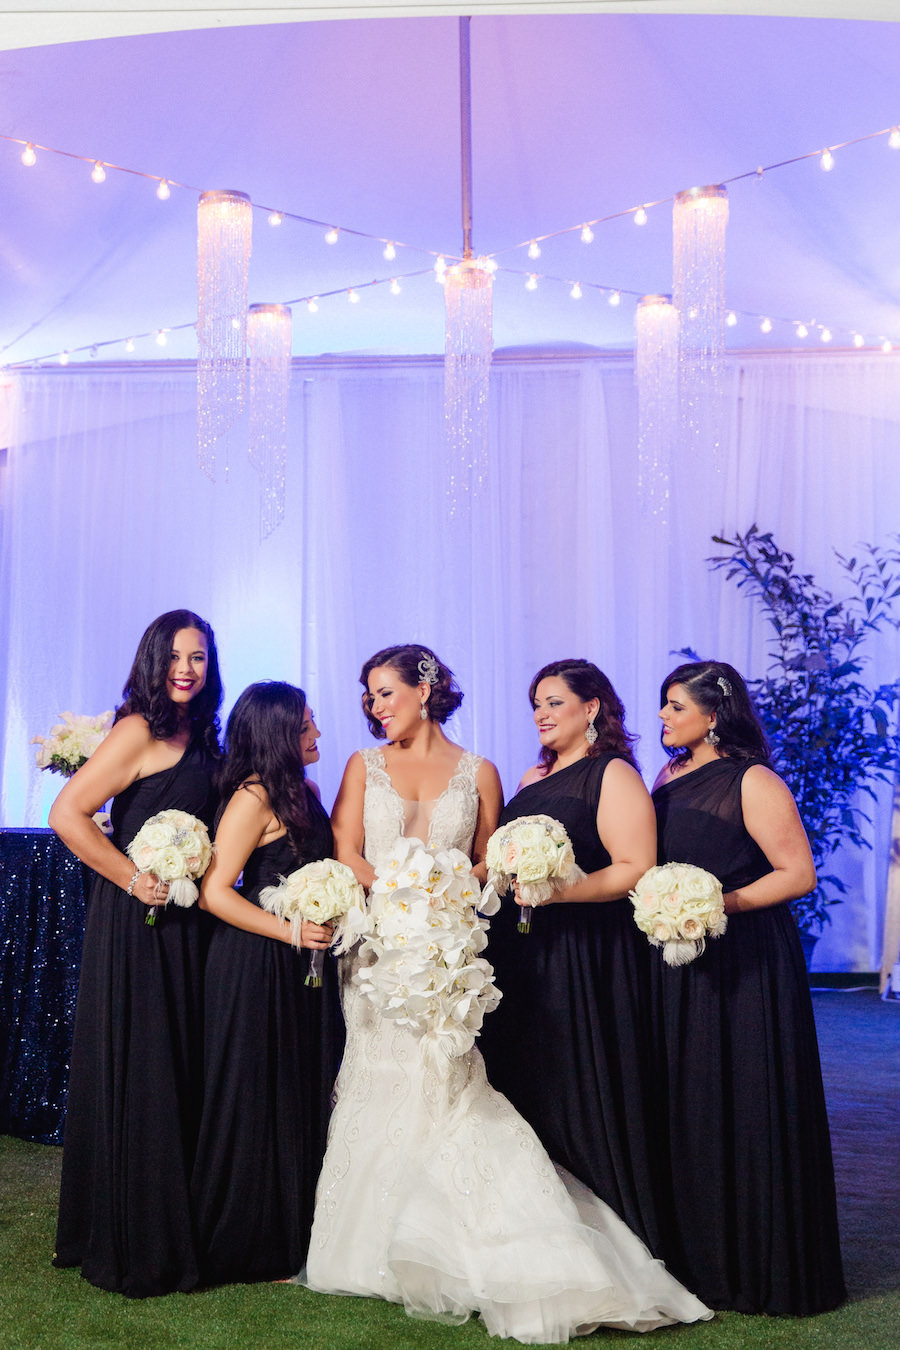 Bridal Party Wedding Portrait in Black One Shoulder Bridesmaids Dresses and Ines Di Santo Sleeveless Mermaid Wedding Dress from Isabel O'Neil Bridal with Ivory Floral Bouquets by Downtown Tampa Wedding Florist Andrea Layne Floral Design | Photography by Ailyn La Torre Photography